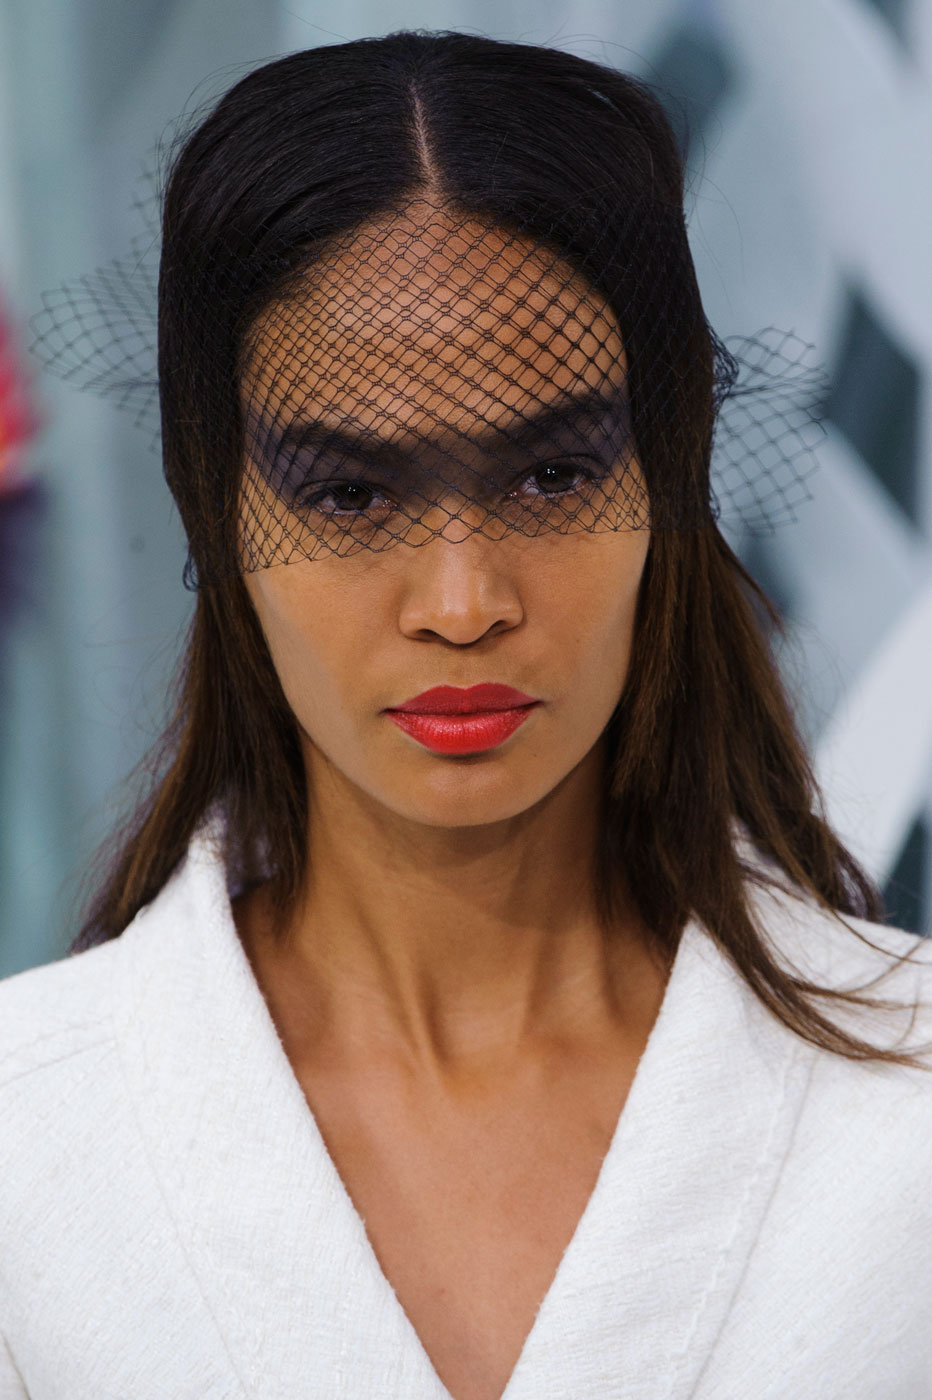 Chanel-fashion-runway-show-close-ups-haute-couture-paris-spring-summer-2015-the-impression-024